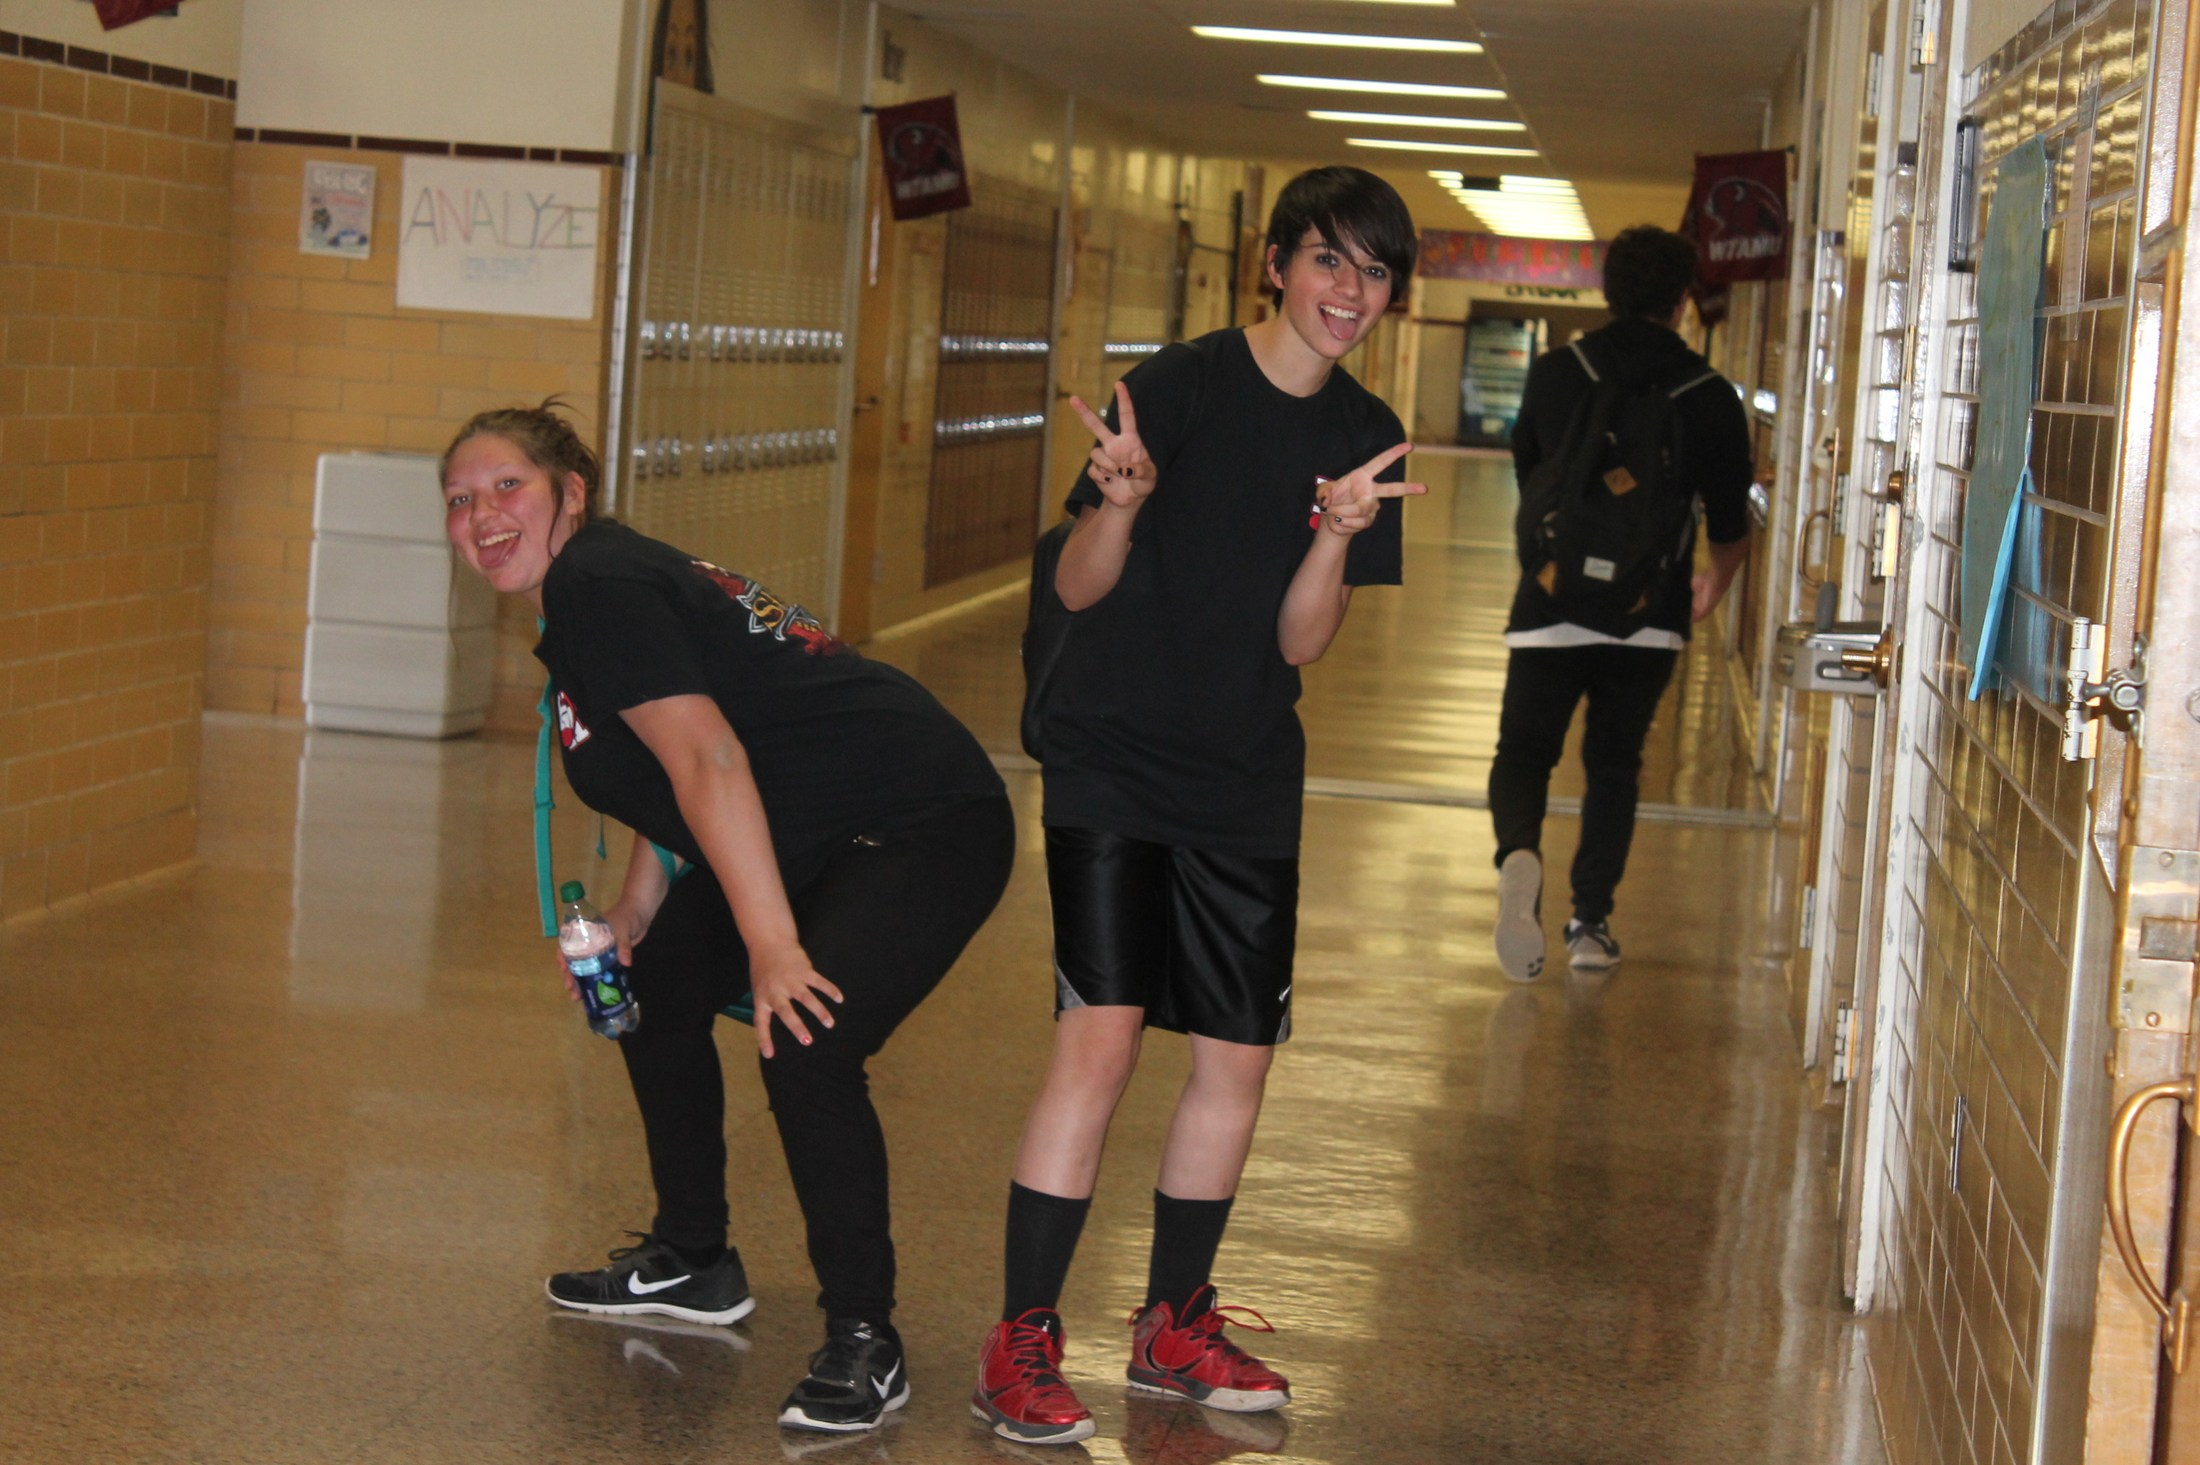 Band silliness in the hallways